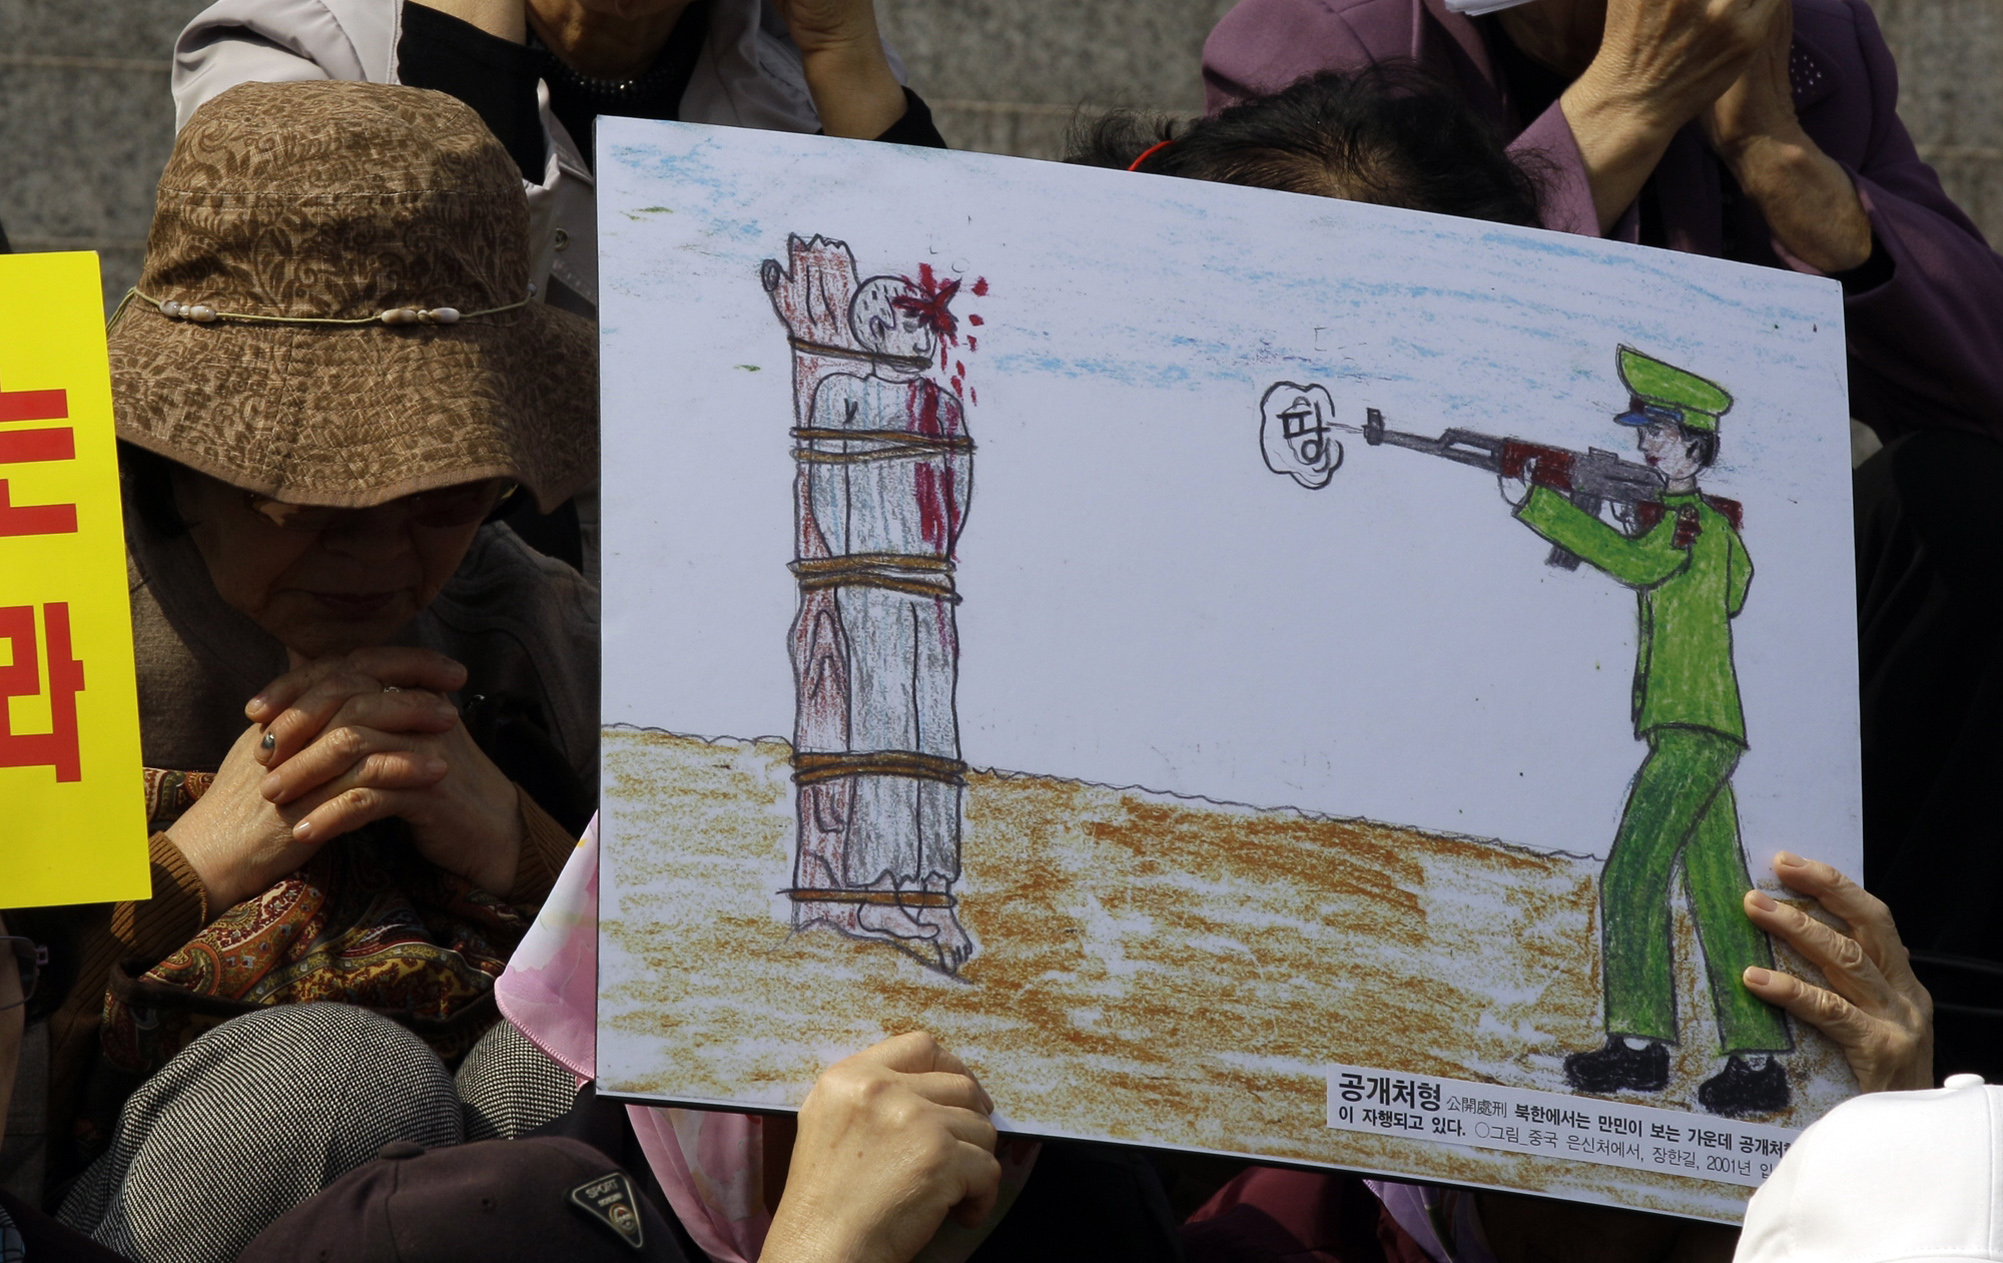 FILE - A North Korean defector reacts next to a drawing depicting a public execution of a North Korean soldier during a human rights rally in Seoul, South Korea, April 14, 2011.